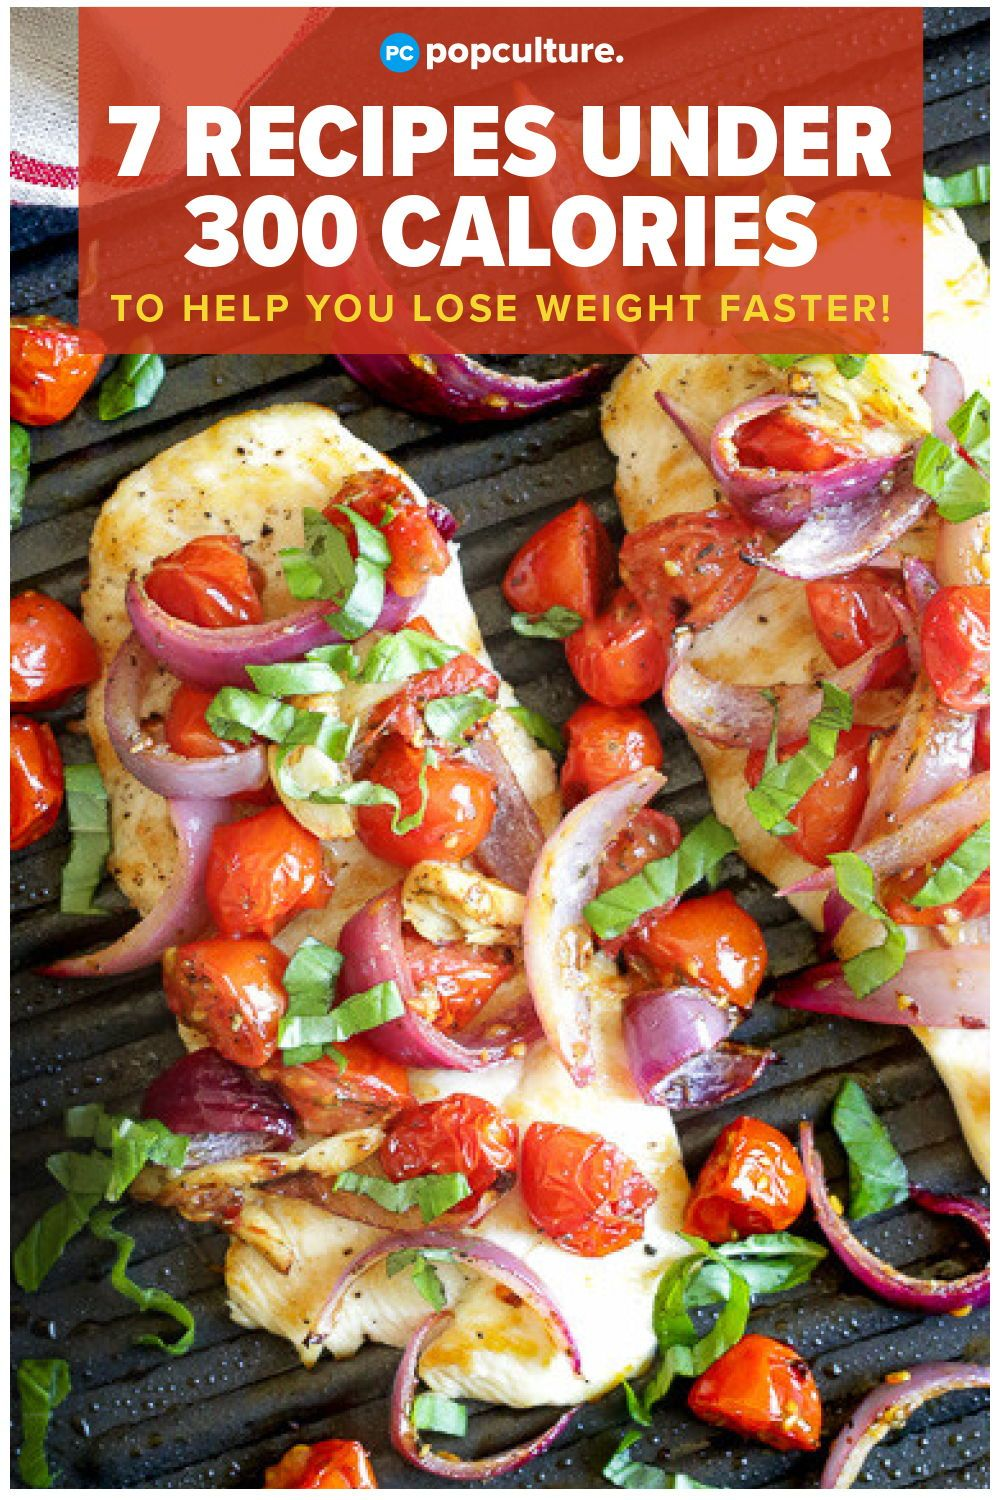 7 Recipes Under 300 Calories to Help You Lose Weight Faster #300caloriemeals